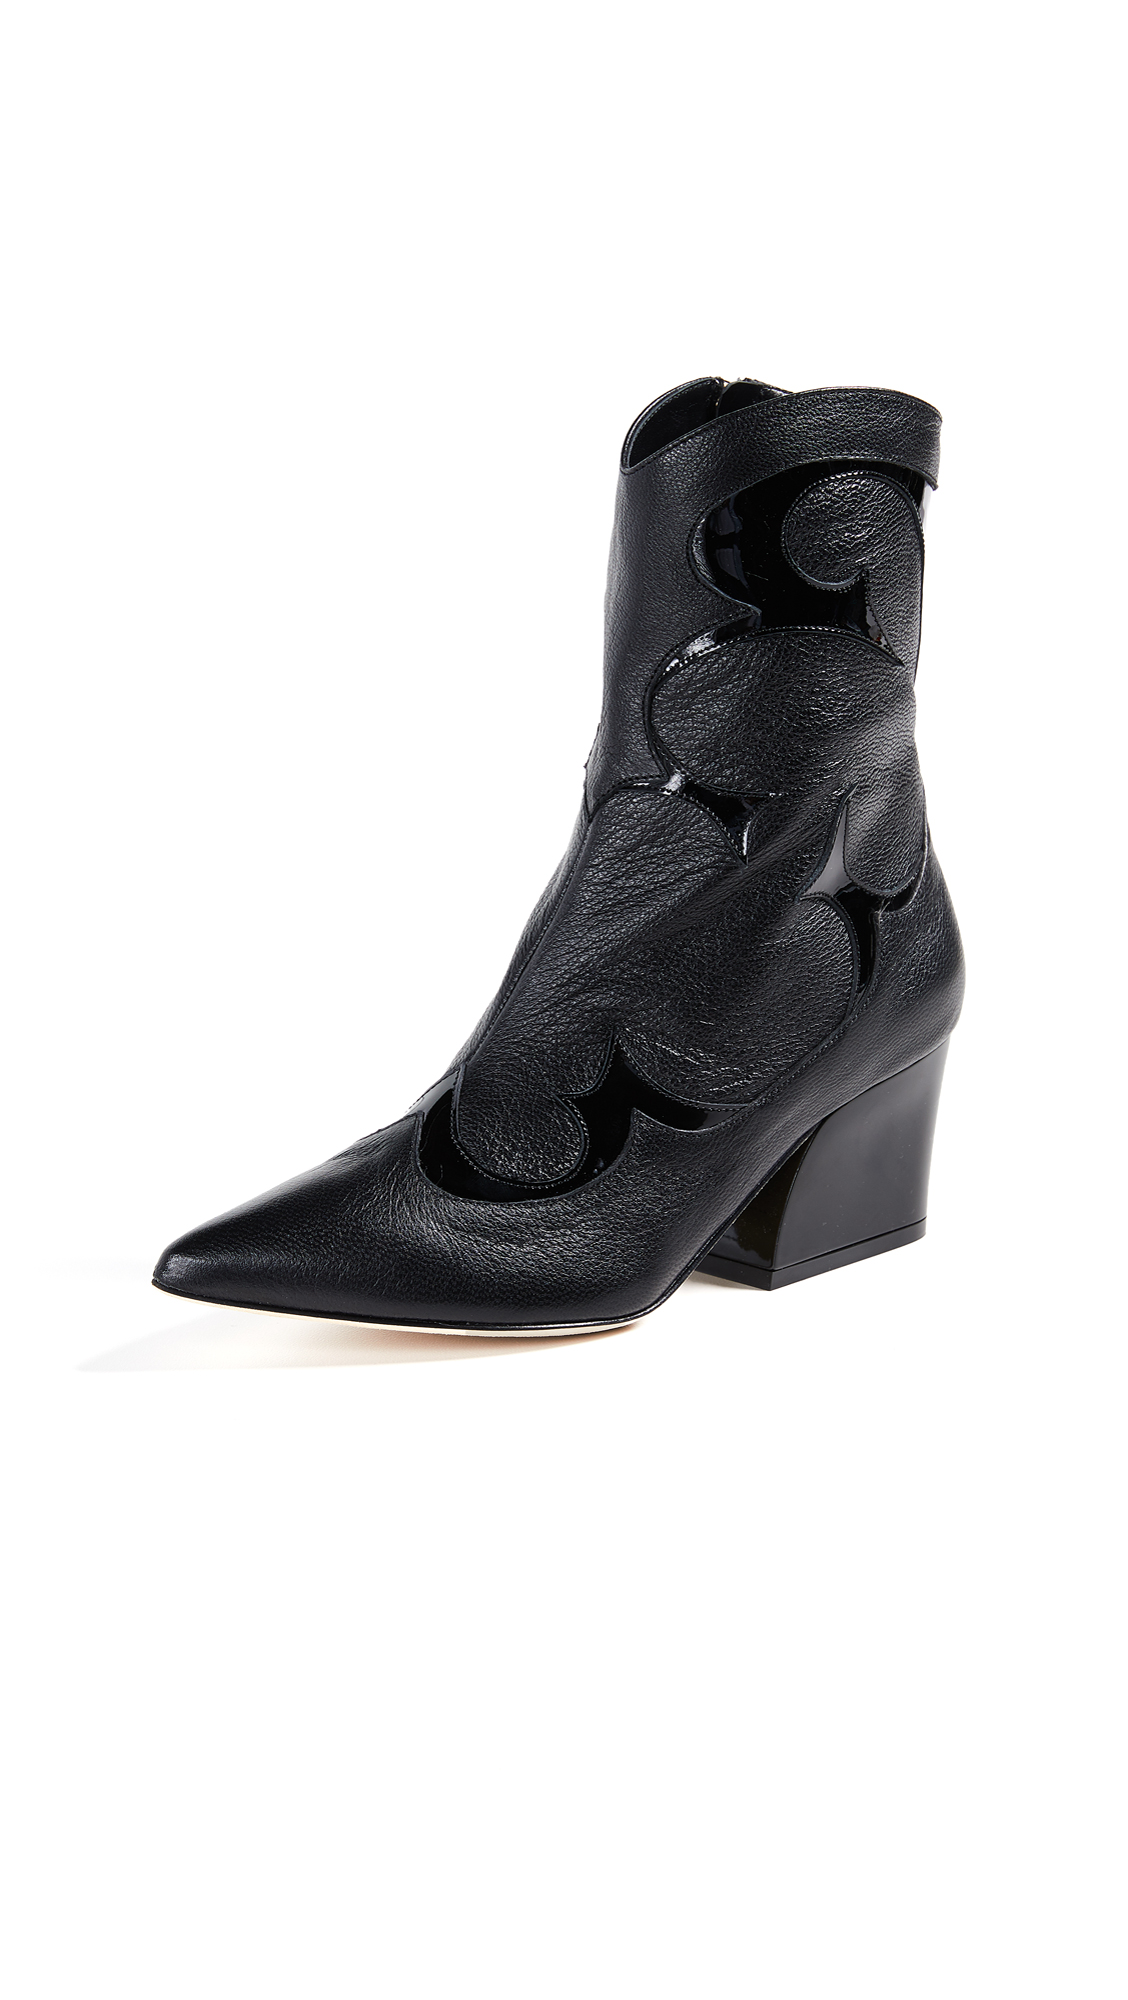 Felix Patent-Trimmed Leather Ankle Boots, Black